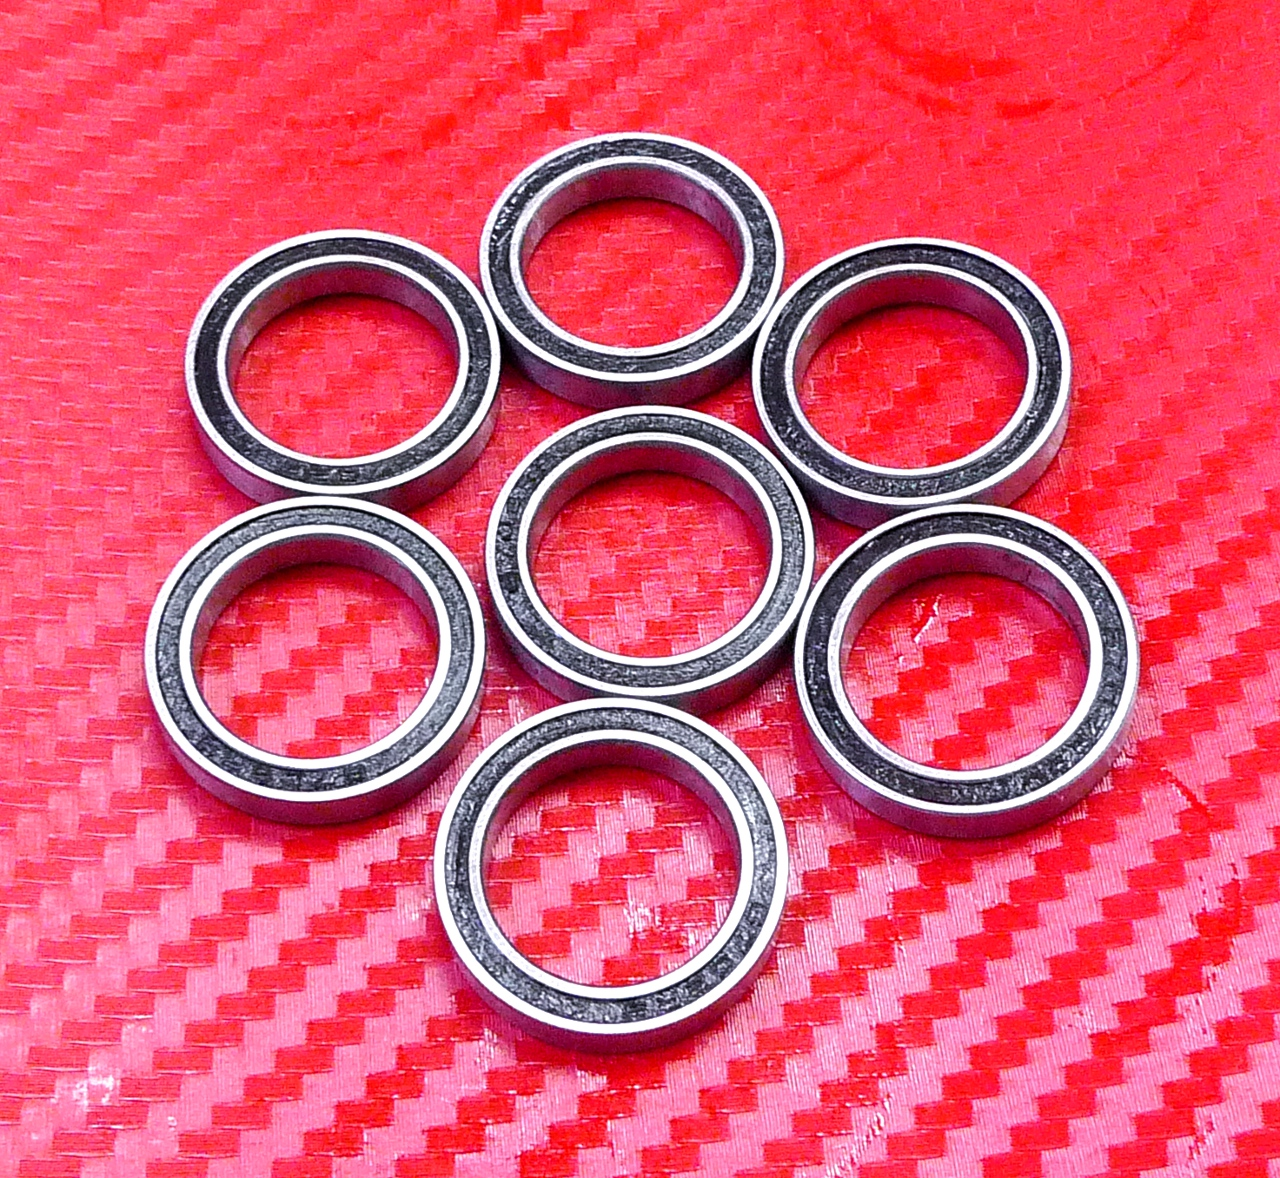 Orange 10 Pcs Rubber Double Sealed Ball Bearing 695RS 695-2RS 5x13x4 mm